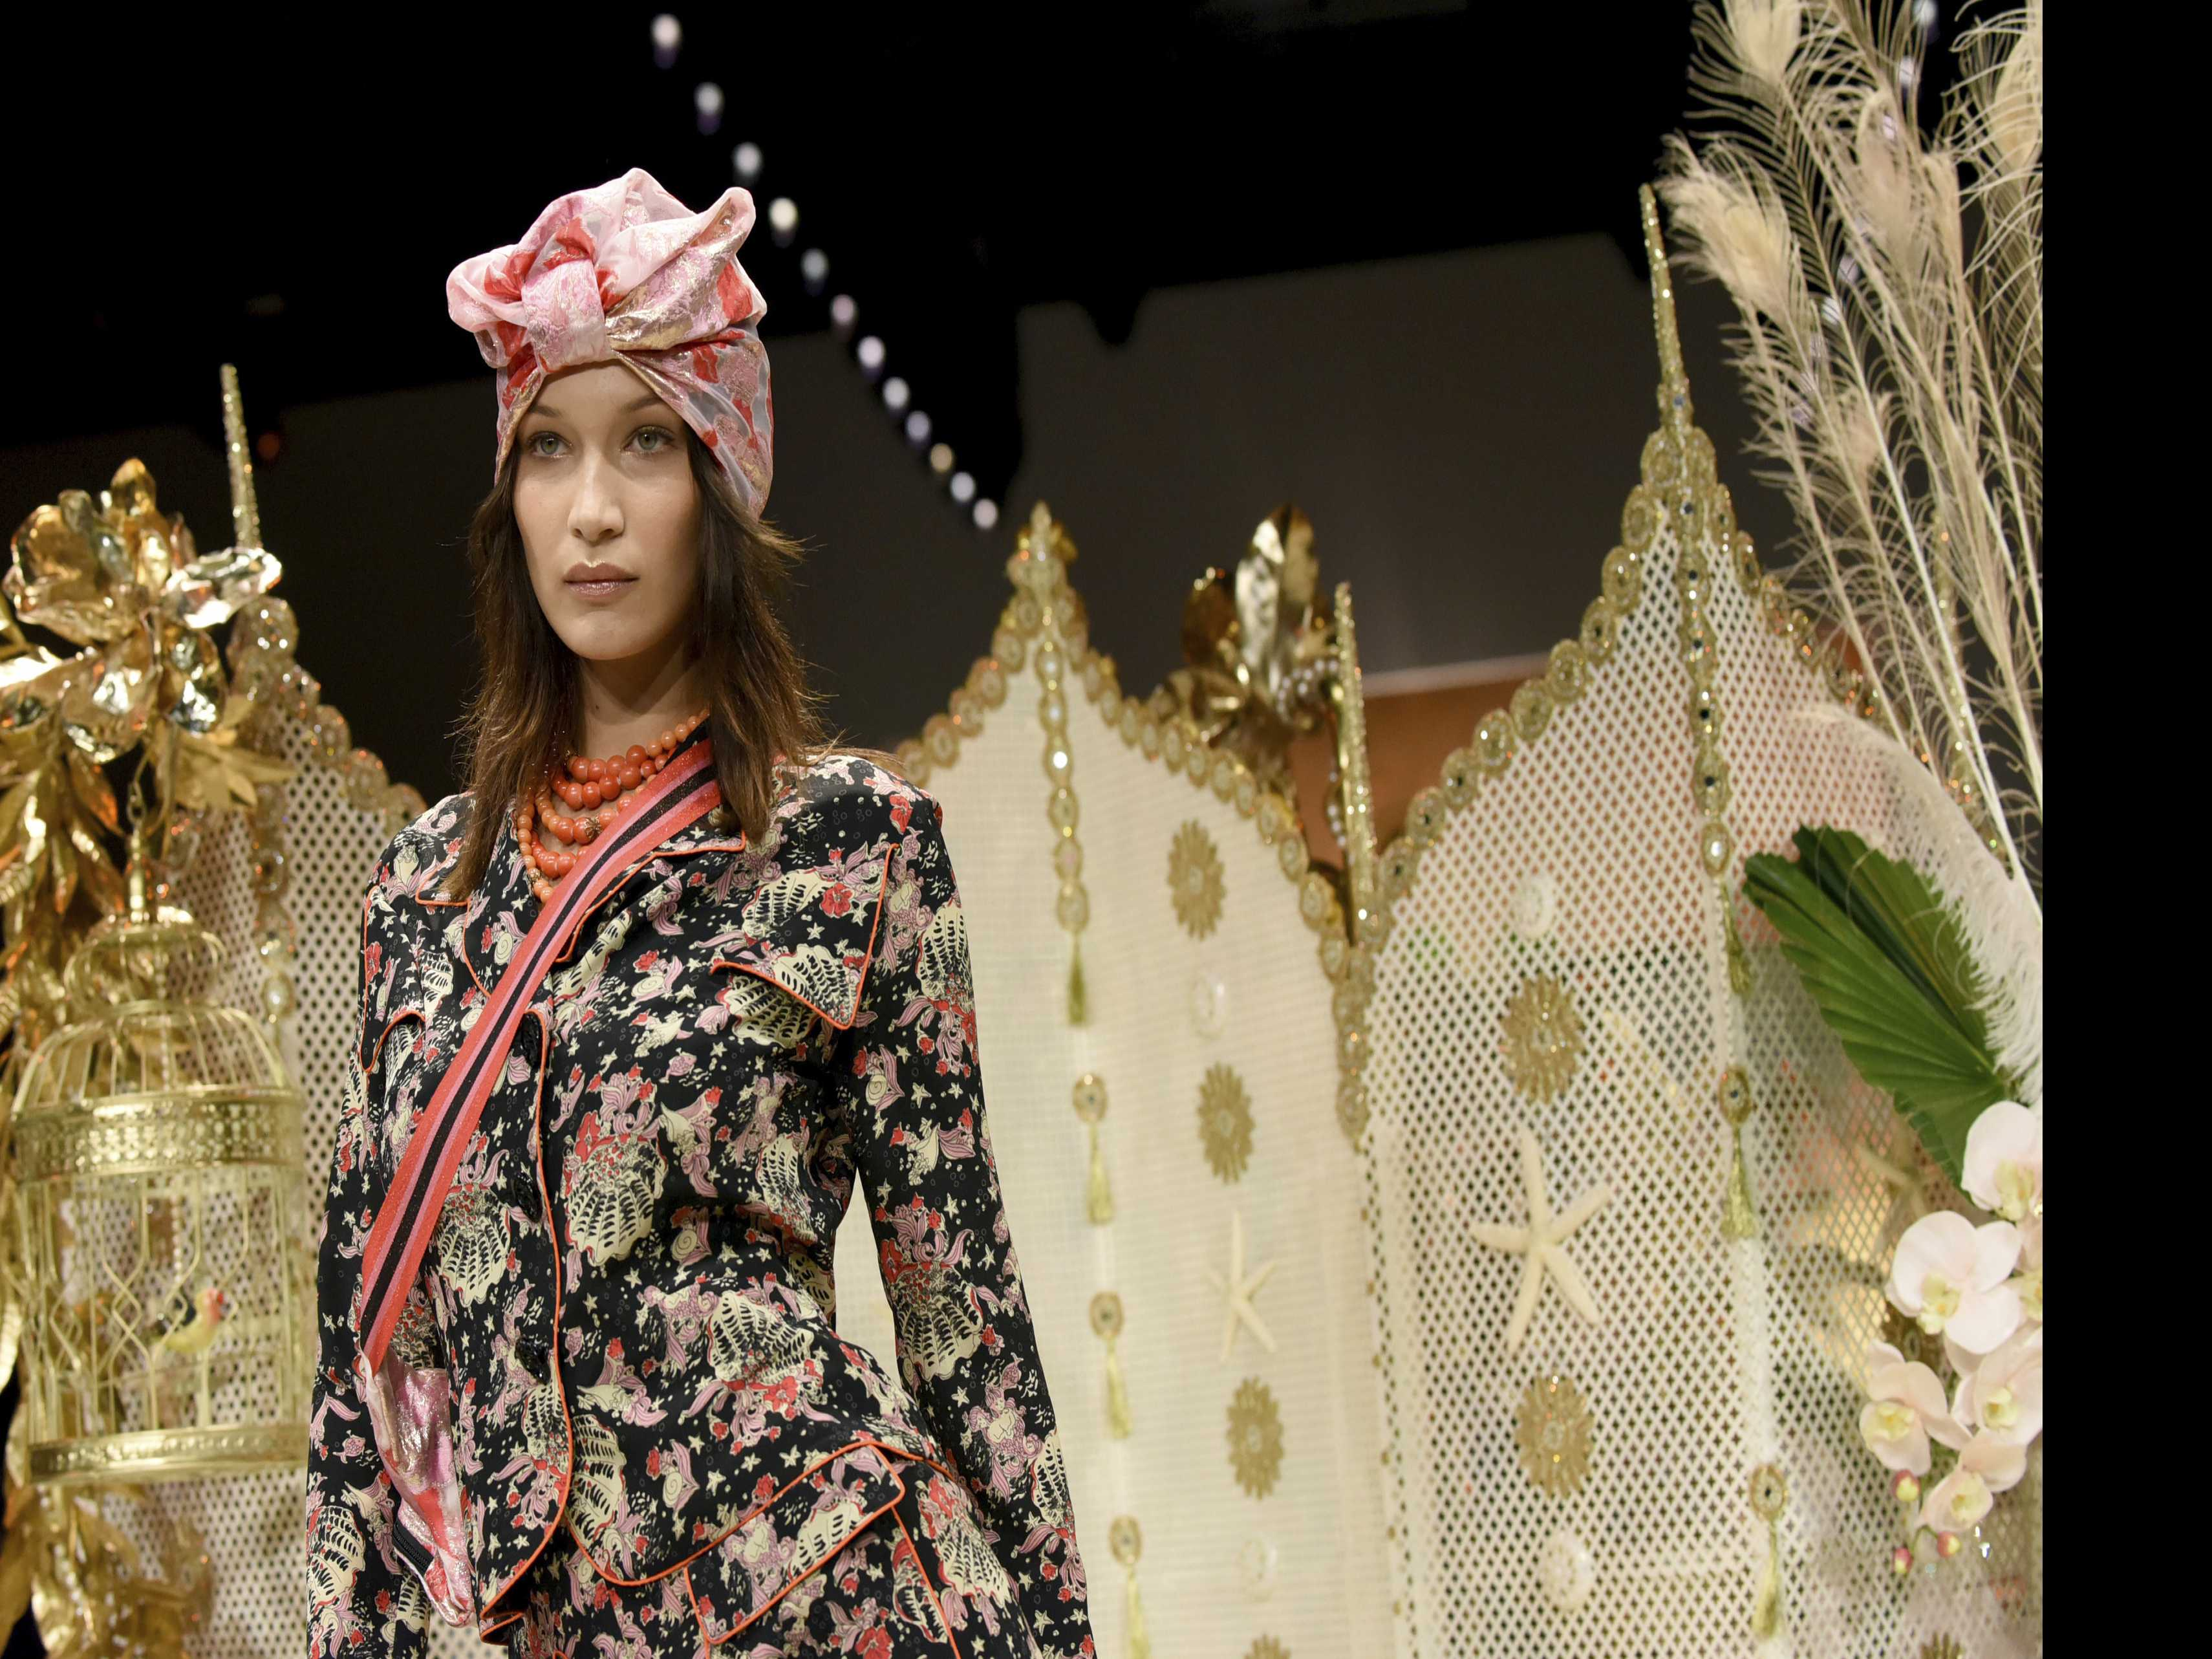 Anna Sui Opens a Grand Bazaar at NY Fashion Week